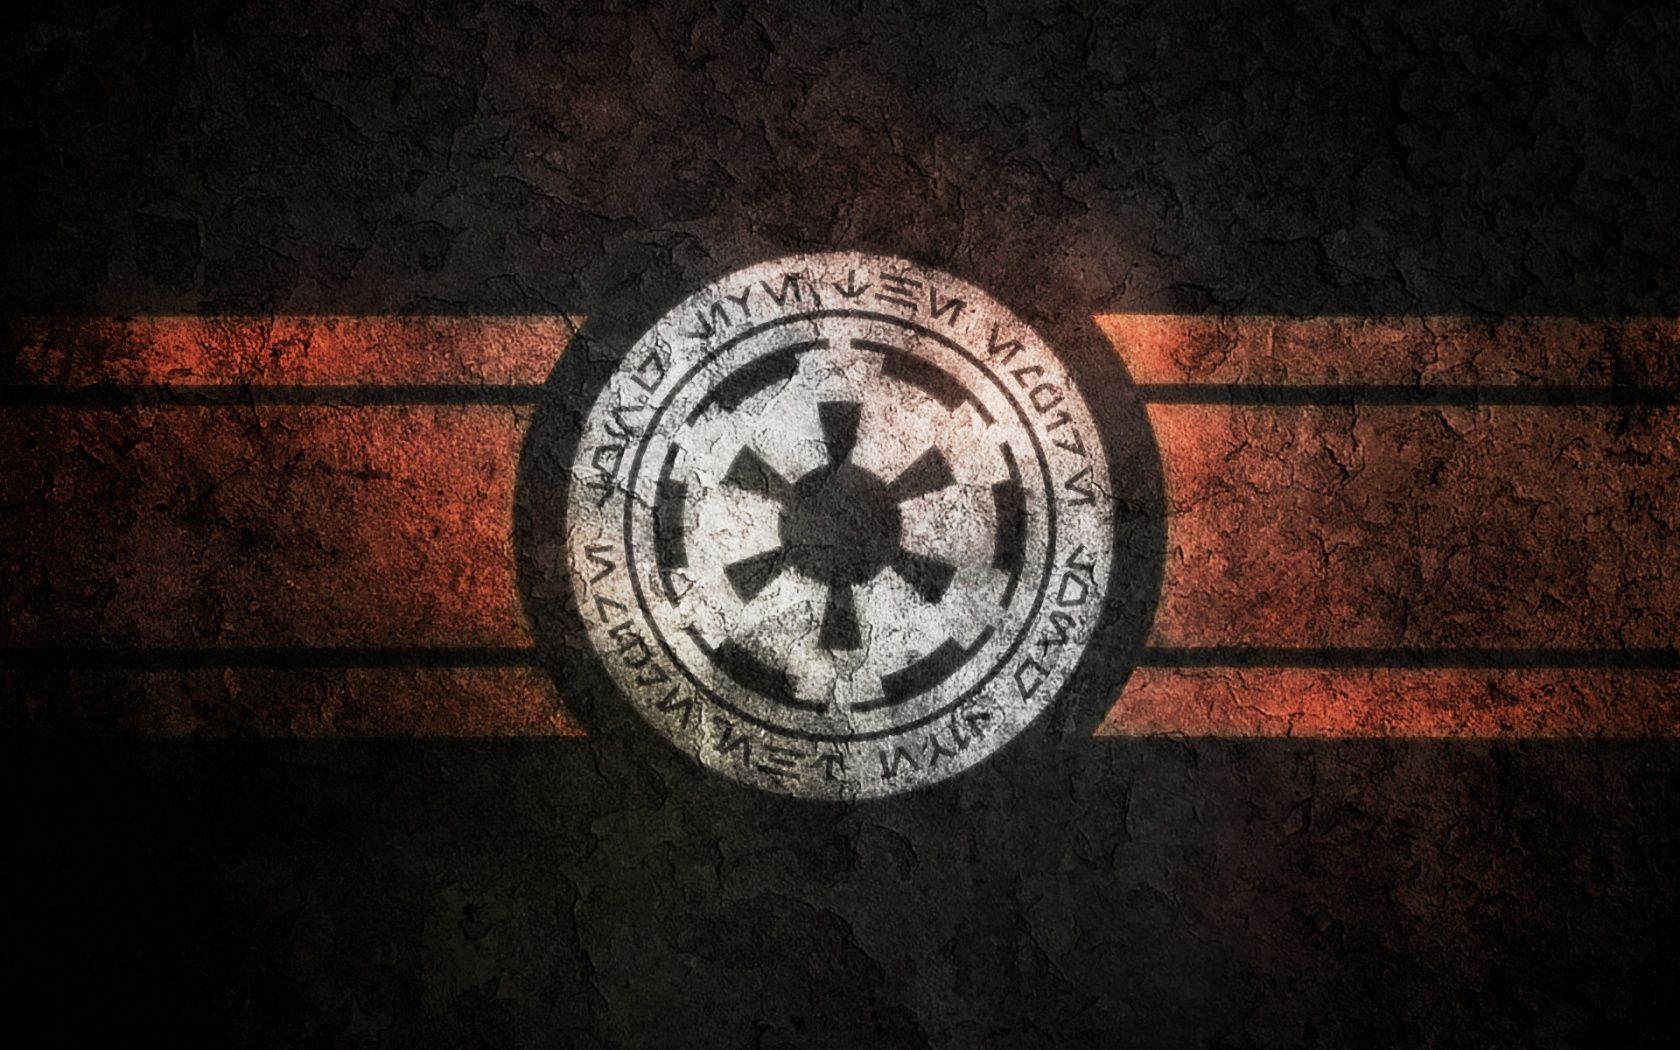 Imperial symbol, wallpaper sized